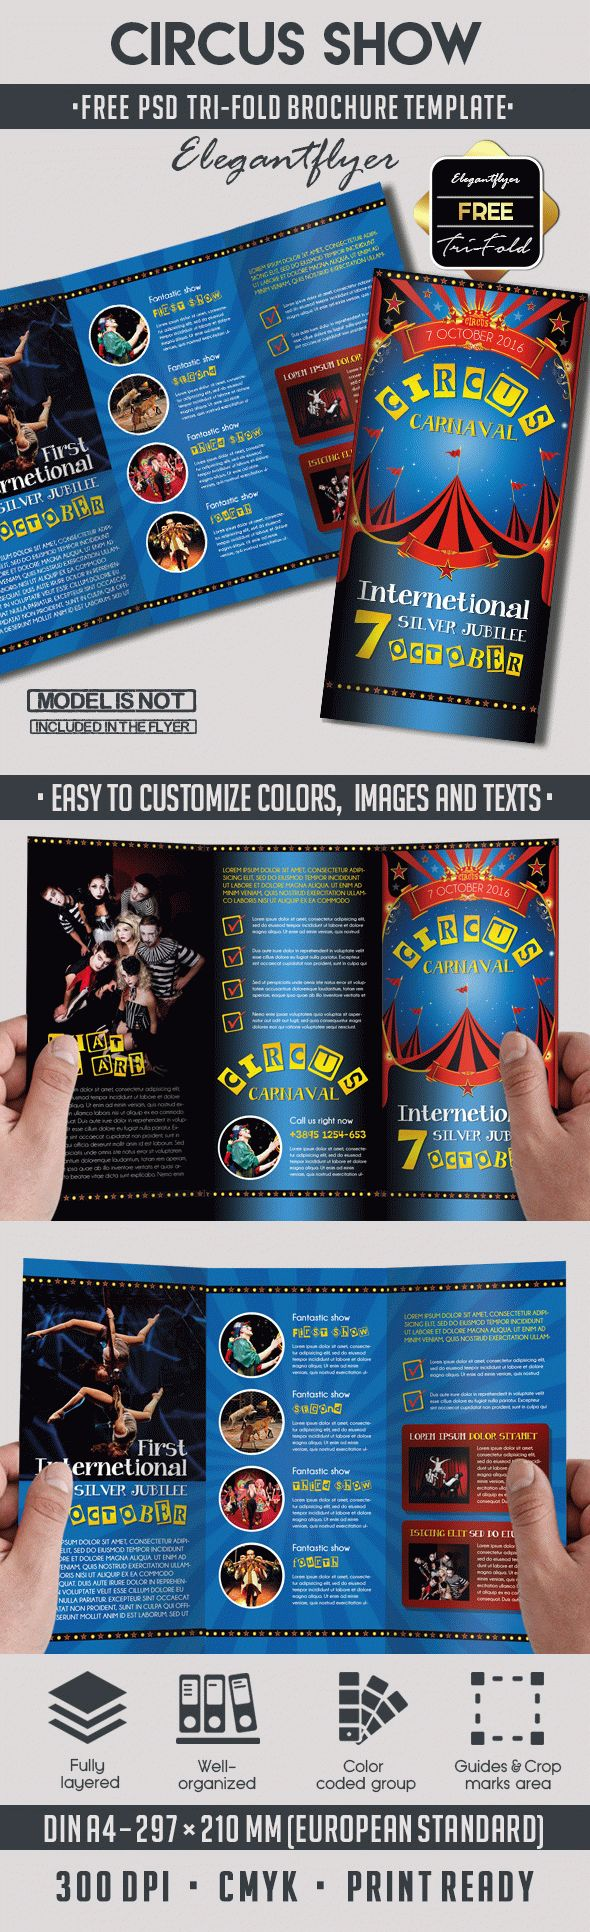 Circus free psd tri fold psd brochure template by for Photoshop tri fold brochure template